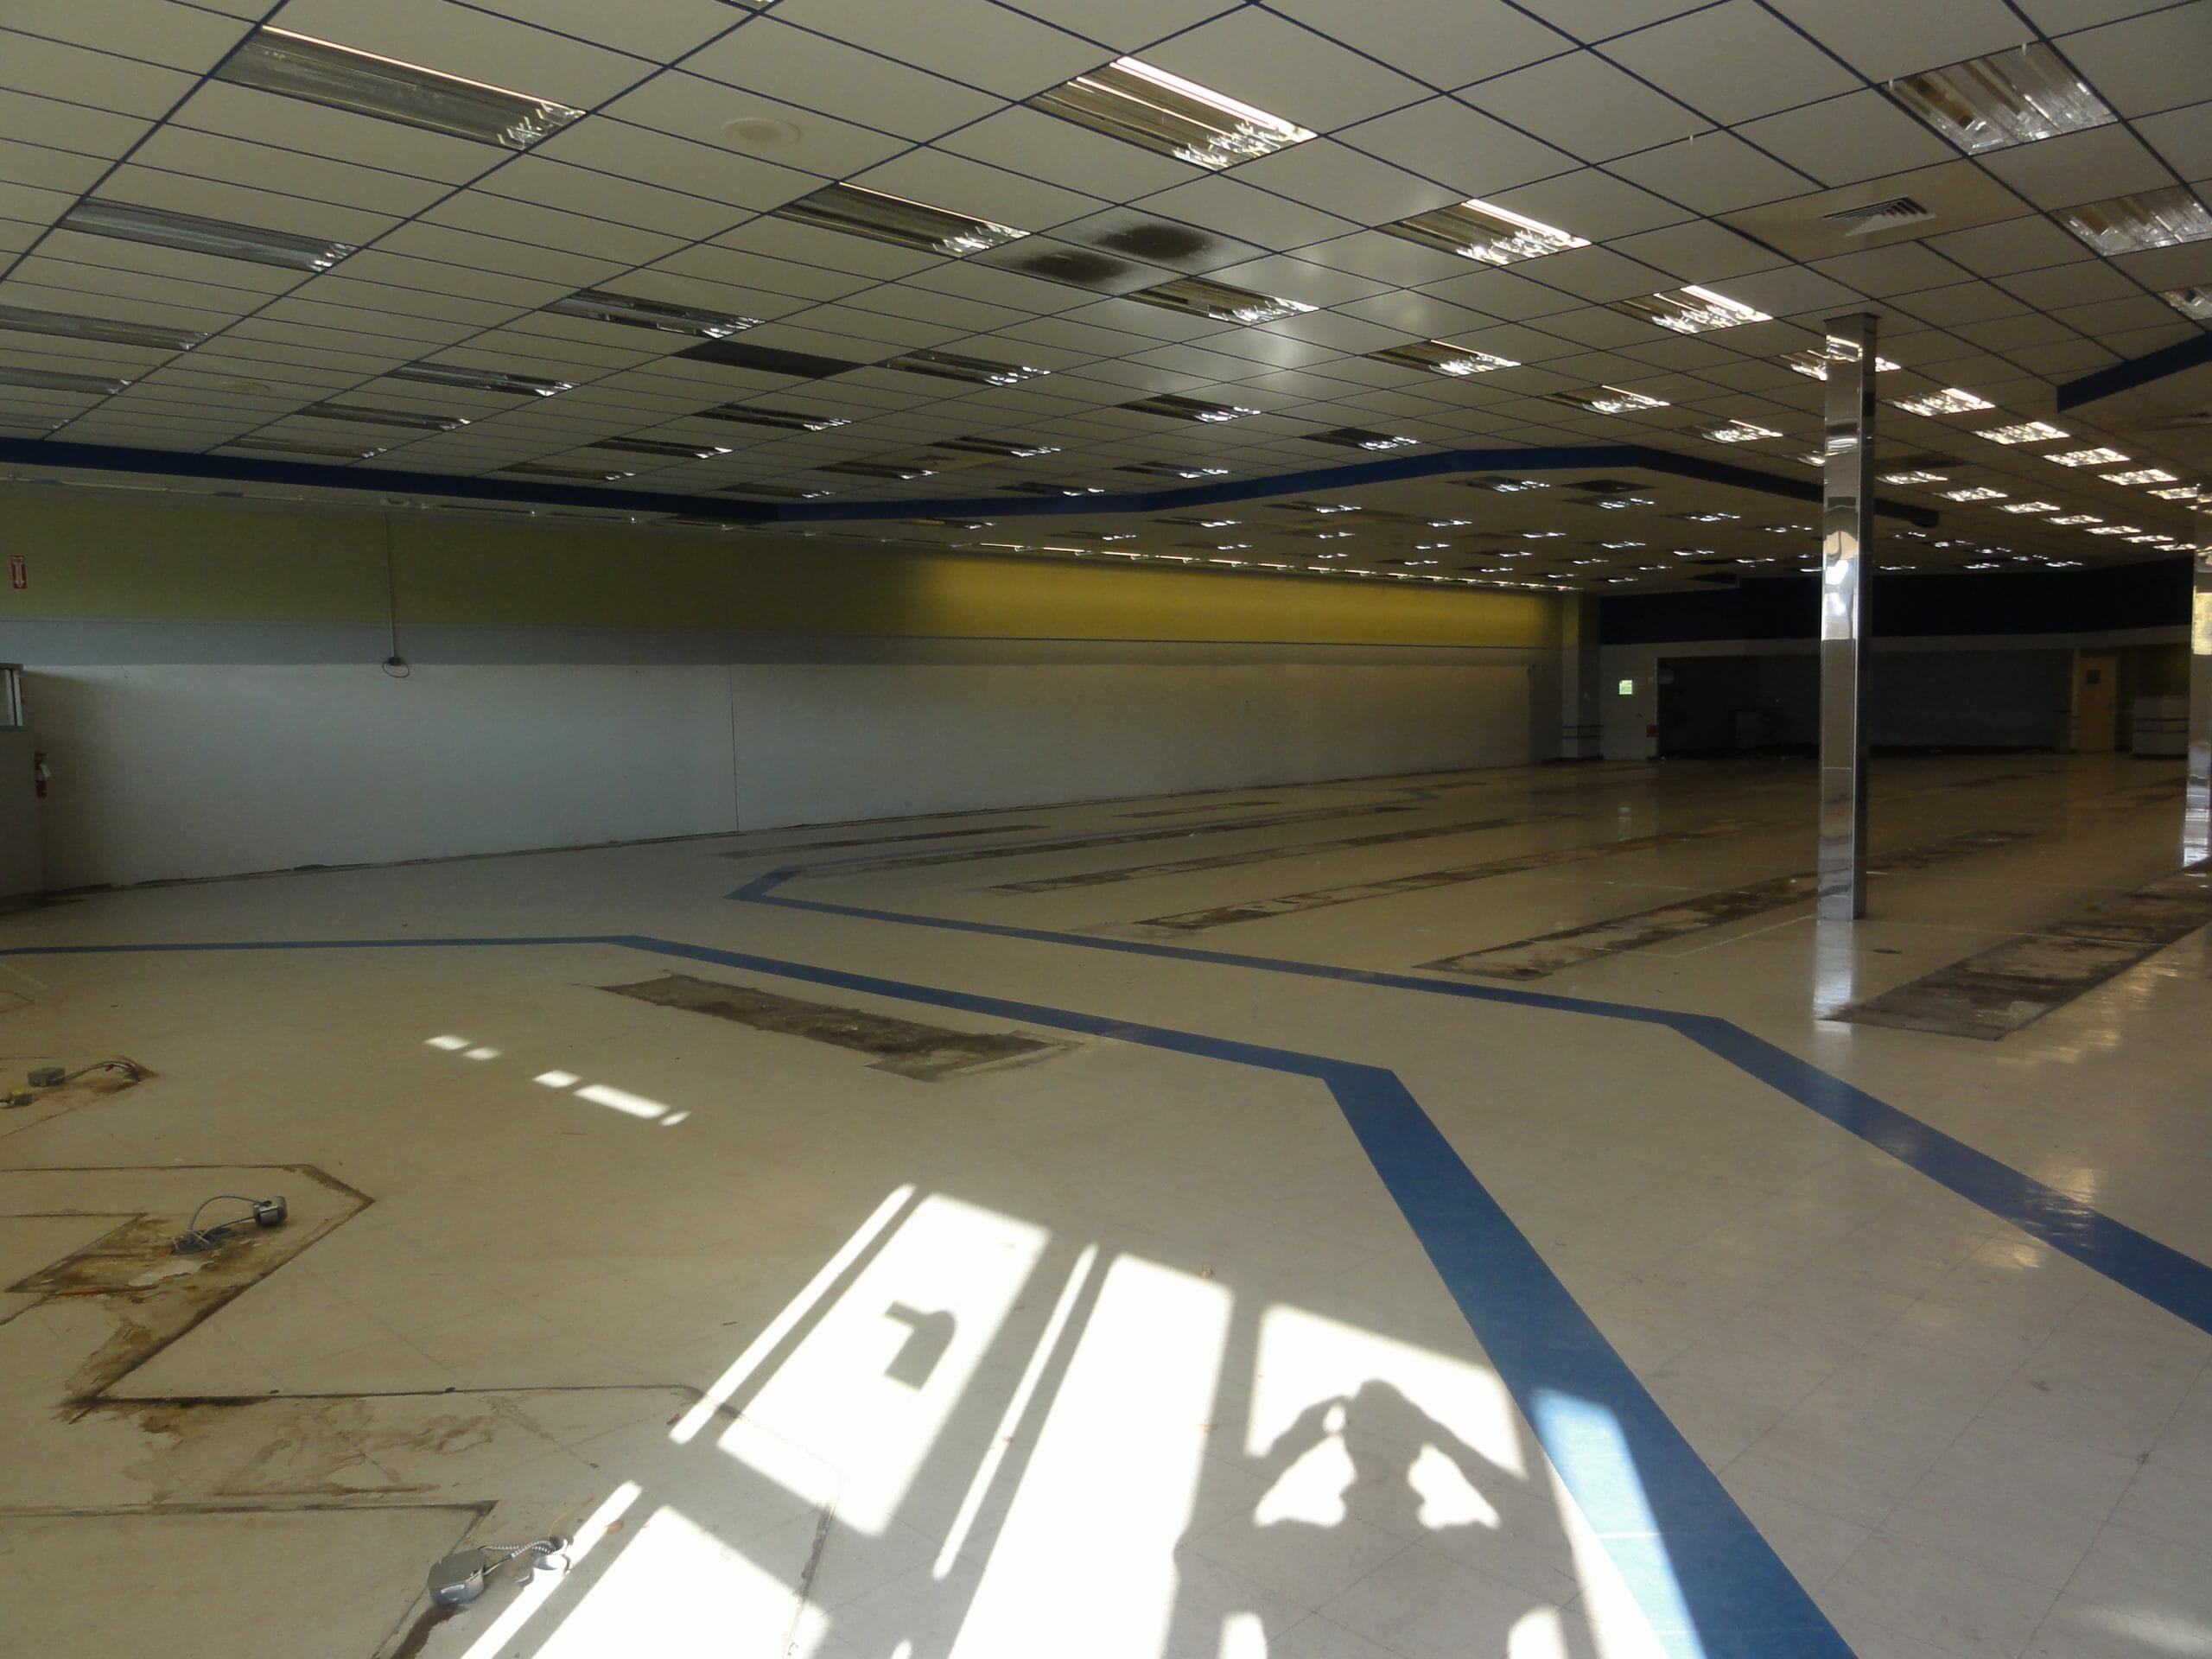 new shop being laid out